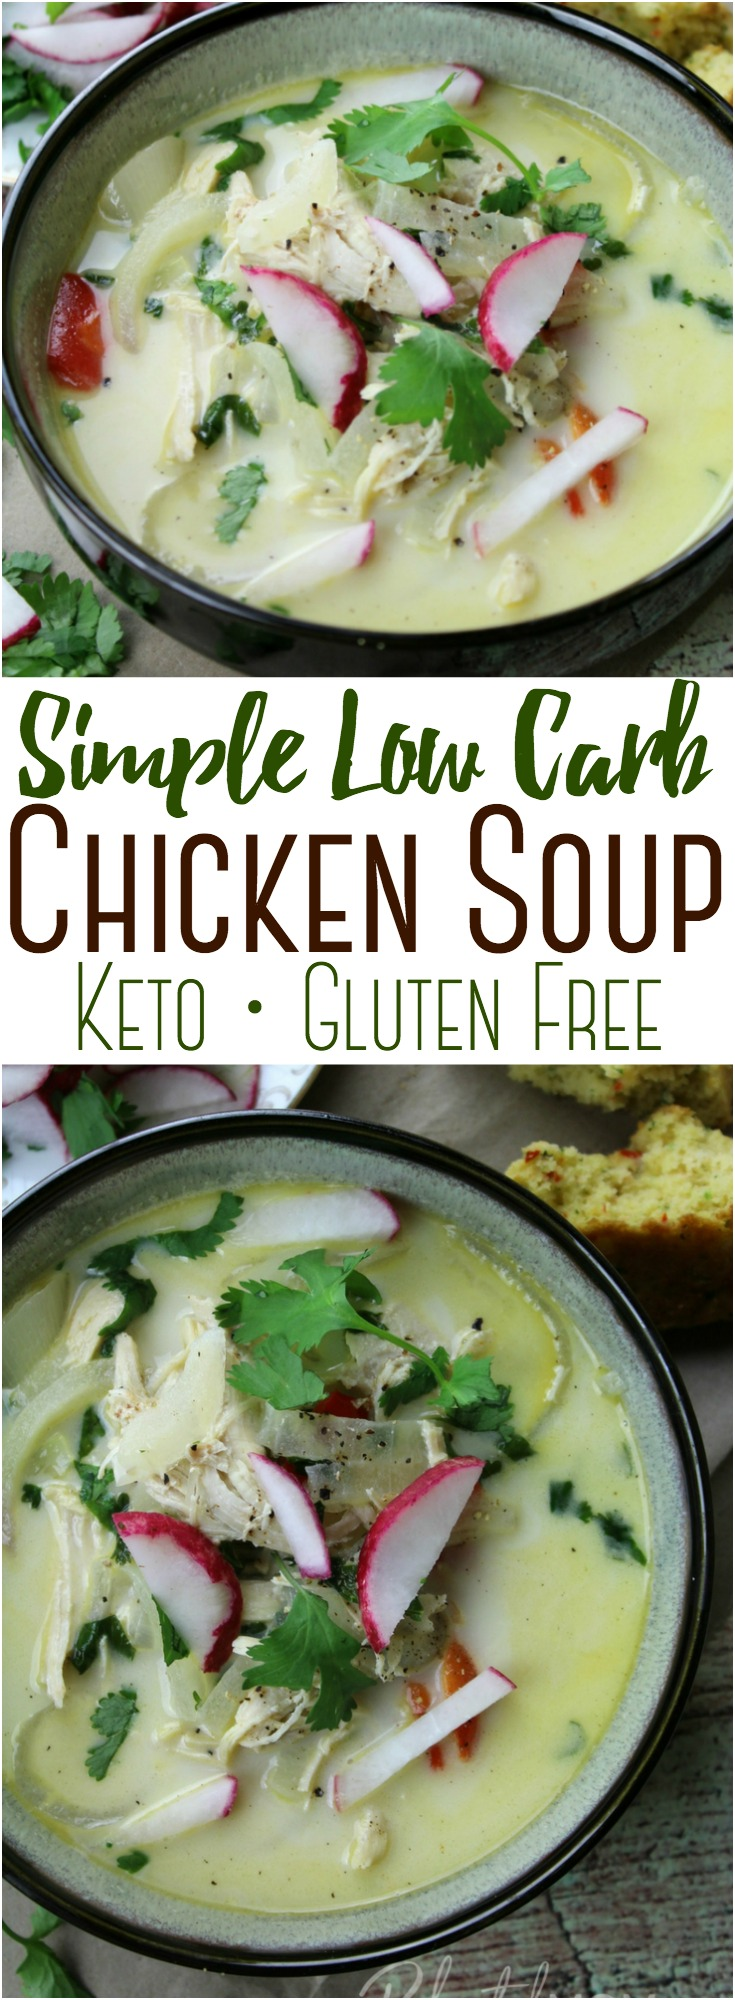 A hearty and flavorful, yet low carb chicken soup with simple ingredients and a rich broth made easily in the Instant Pot! #InstantPot #StoveTop #PressureCooker #Keto #LowCarb #Chicken #Soup #Healthy